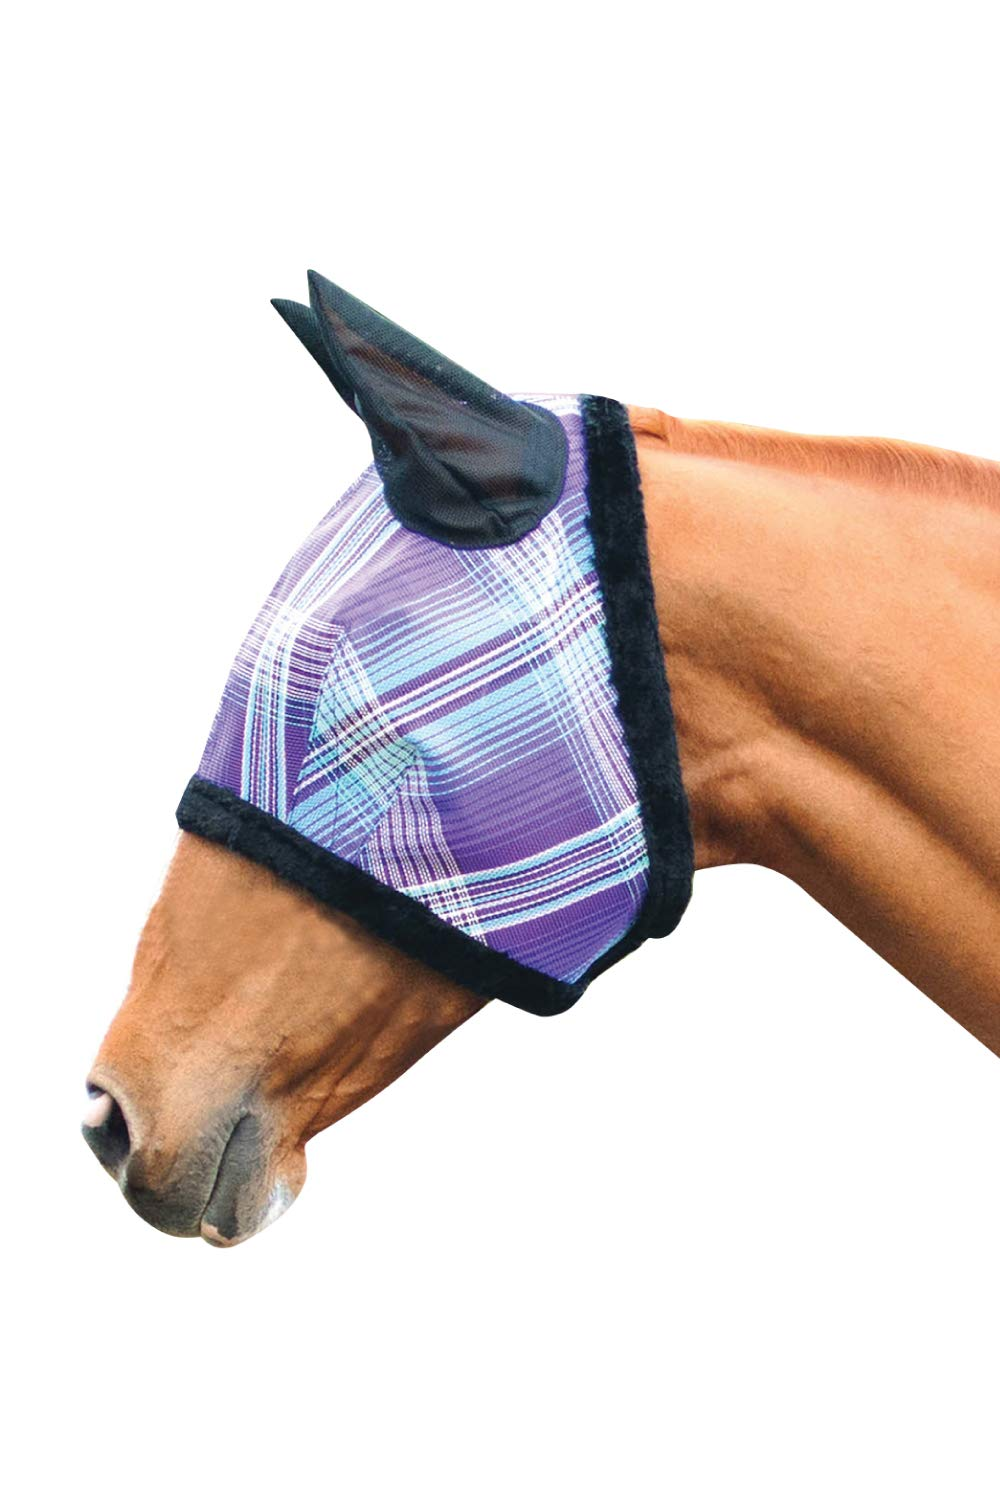 Kensington Pony Fly Mask with Soft Ears and Fleece Trim - Protects Face and Ears from Biting Insects and UV Rays While Allowing Full Visibility (P, Lavender Mint Plaid)